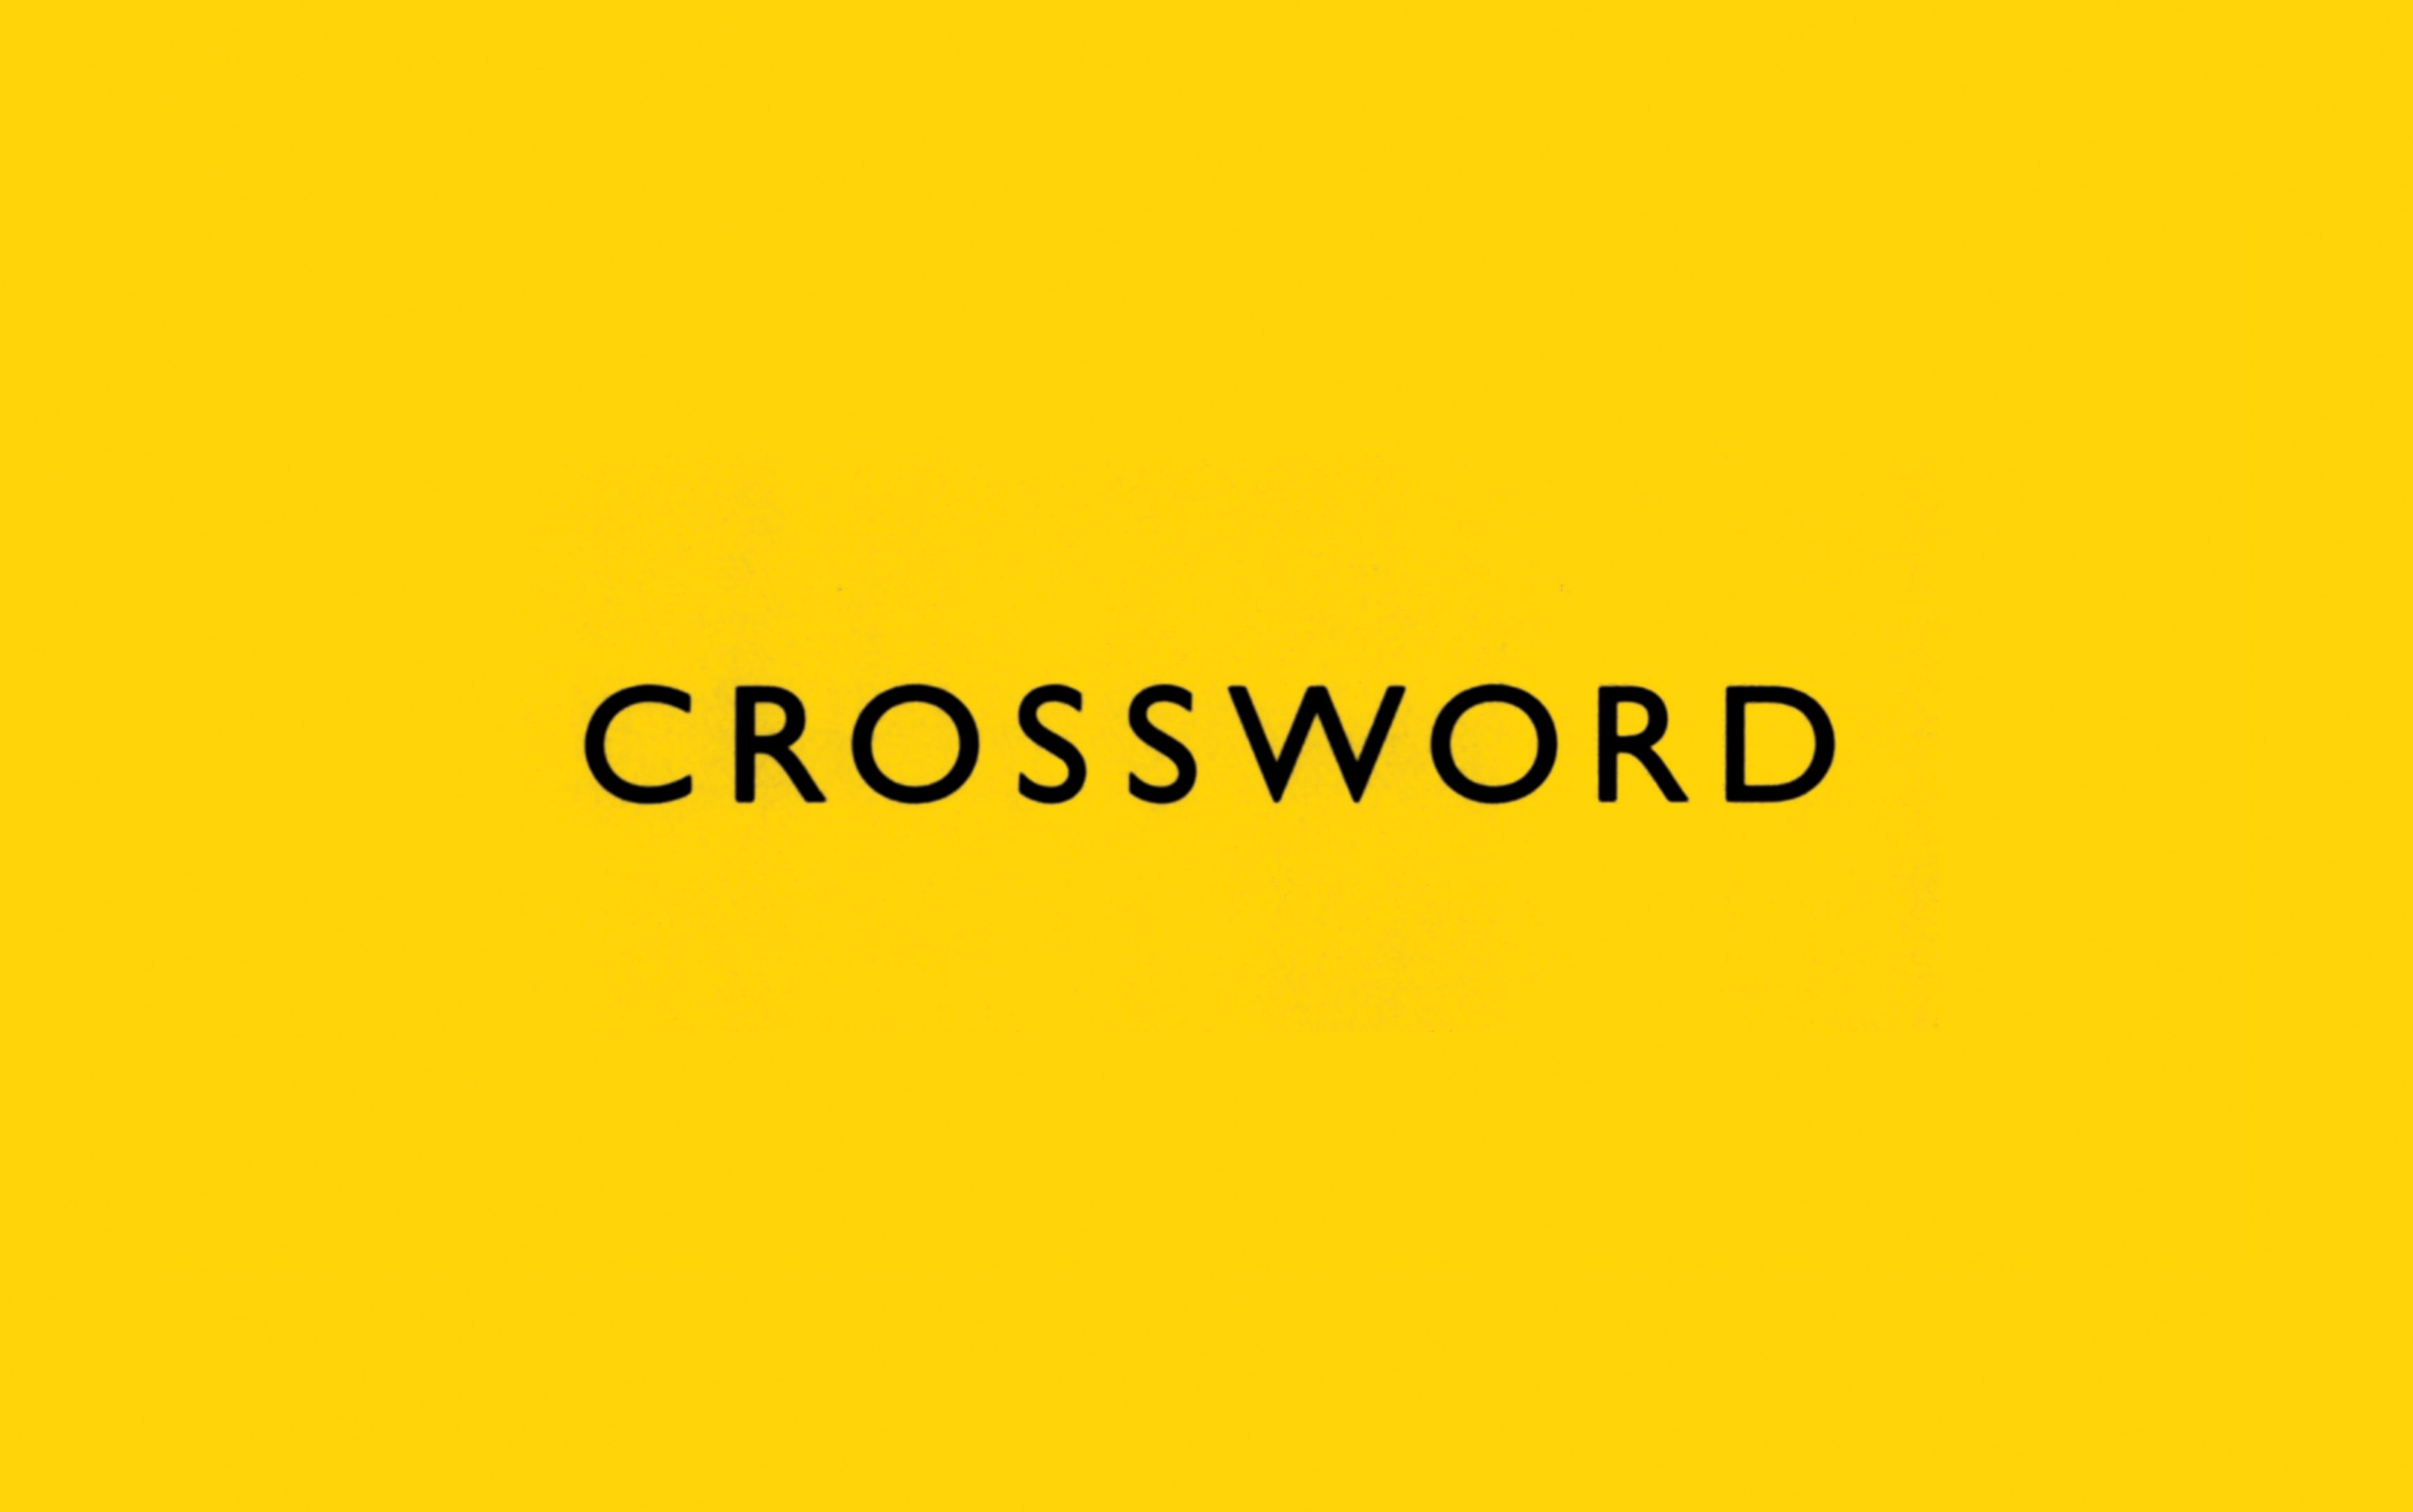 Logo Design For Crossword